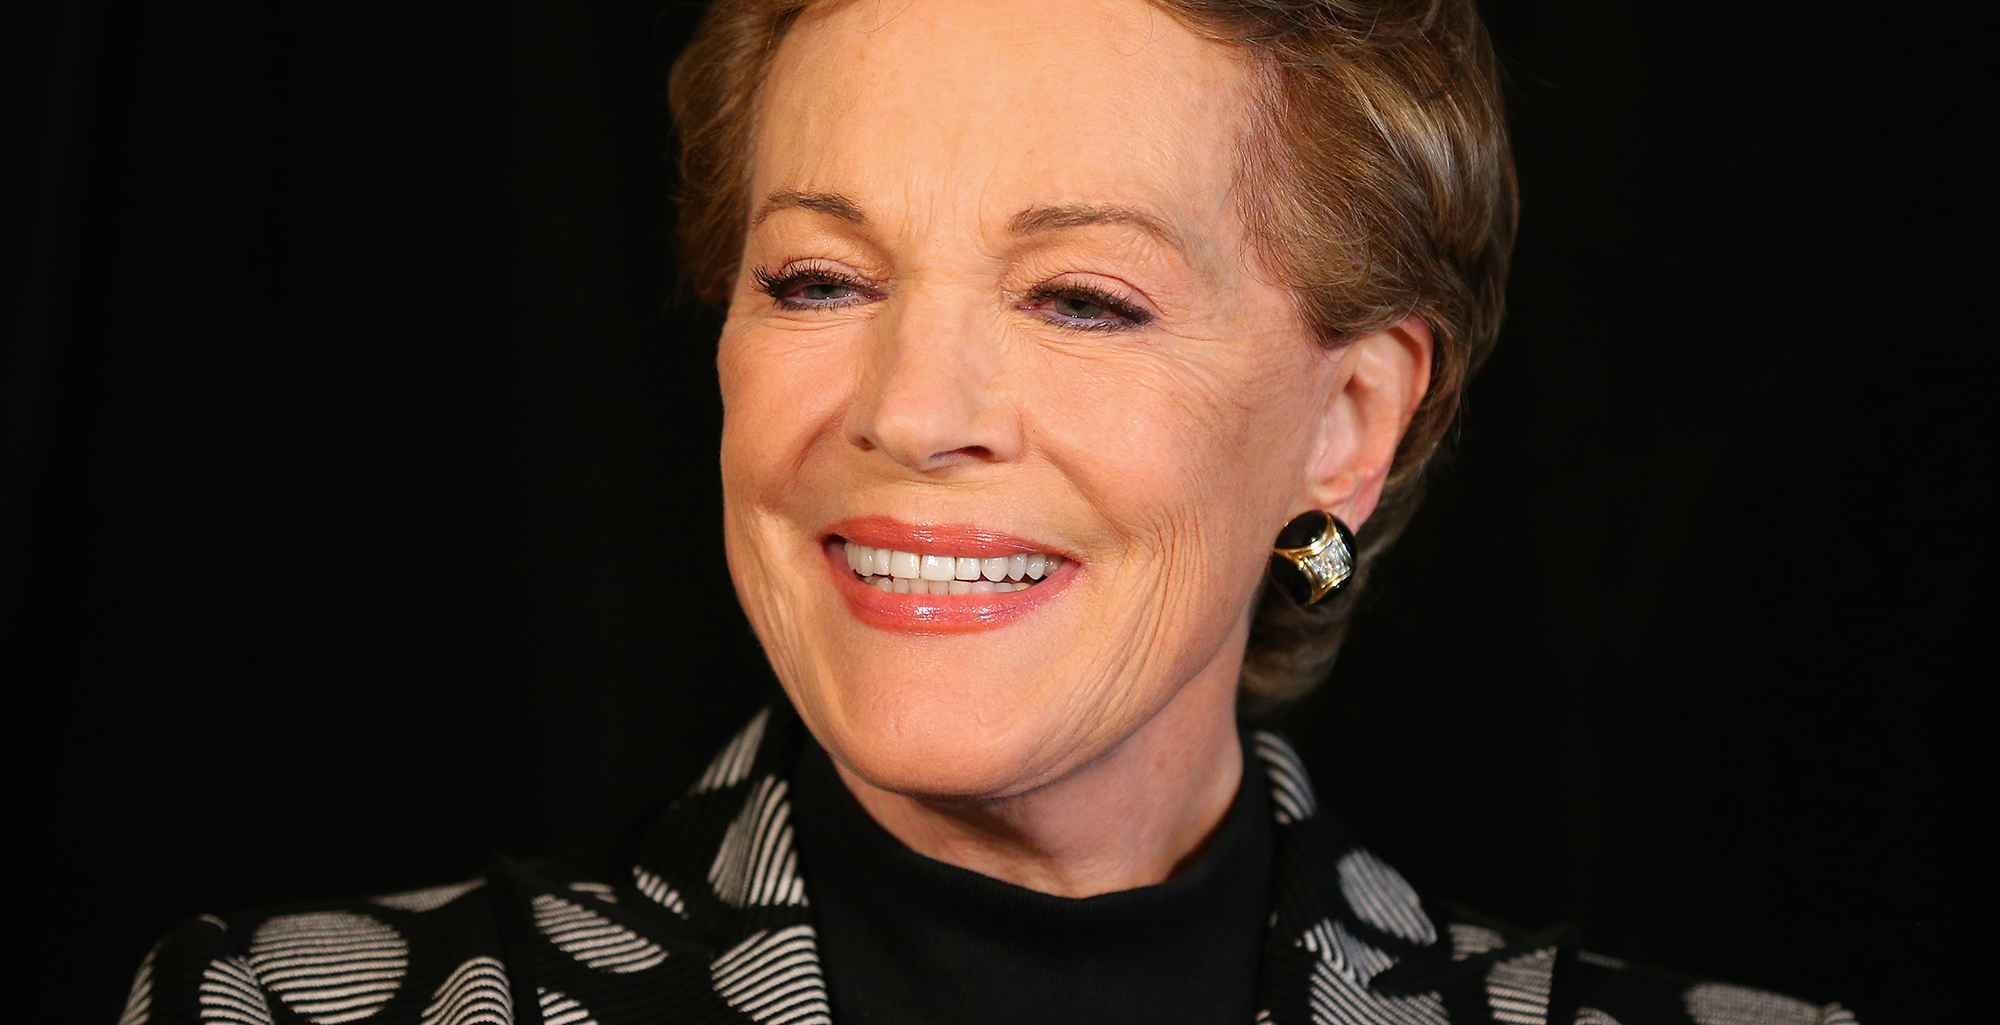 Julie Andrews Reacts to Emily Blunt as Mary Poppins | Anglophenia ...: www.bbcamerica.com/anglophenia/2016/08/julie-andrews-reacts-to...